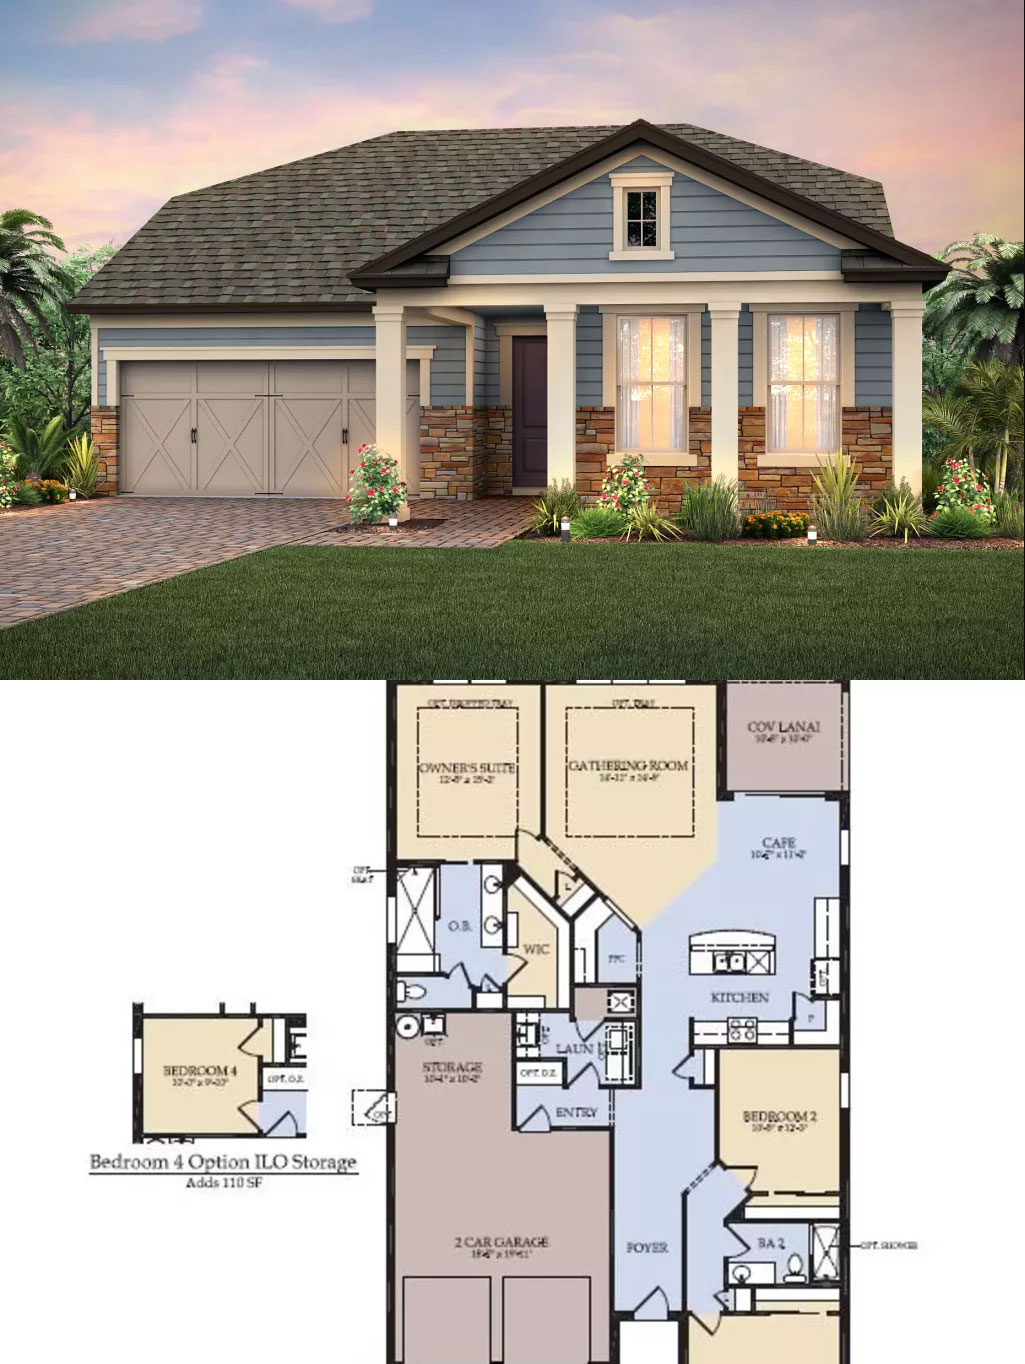 Epperson ranch floor plans pulte homes in epperson for Great home plans